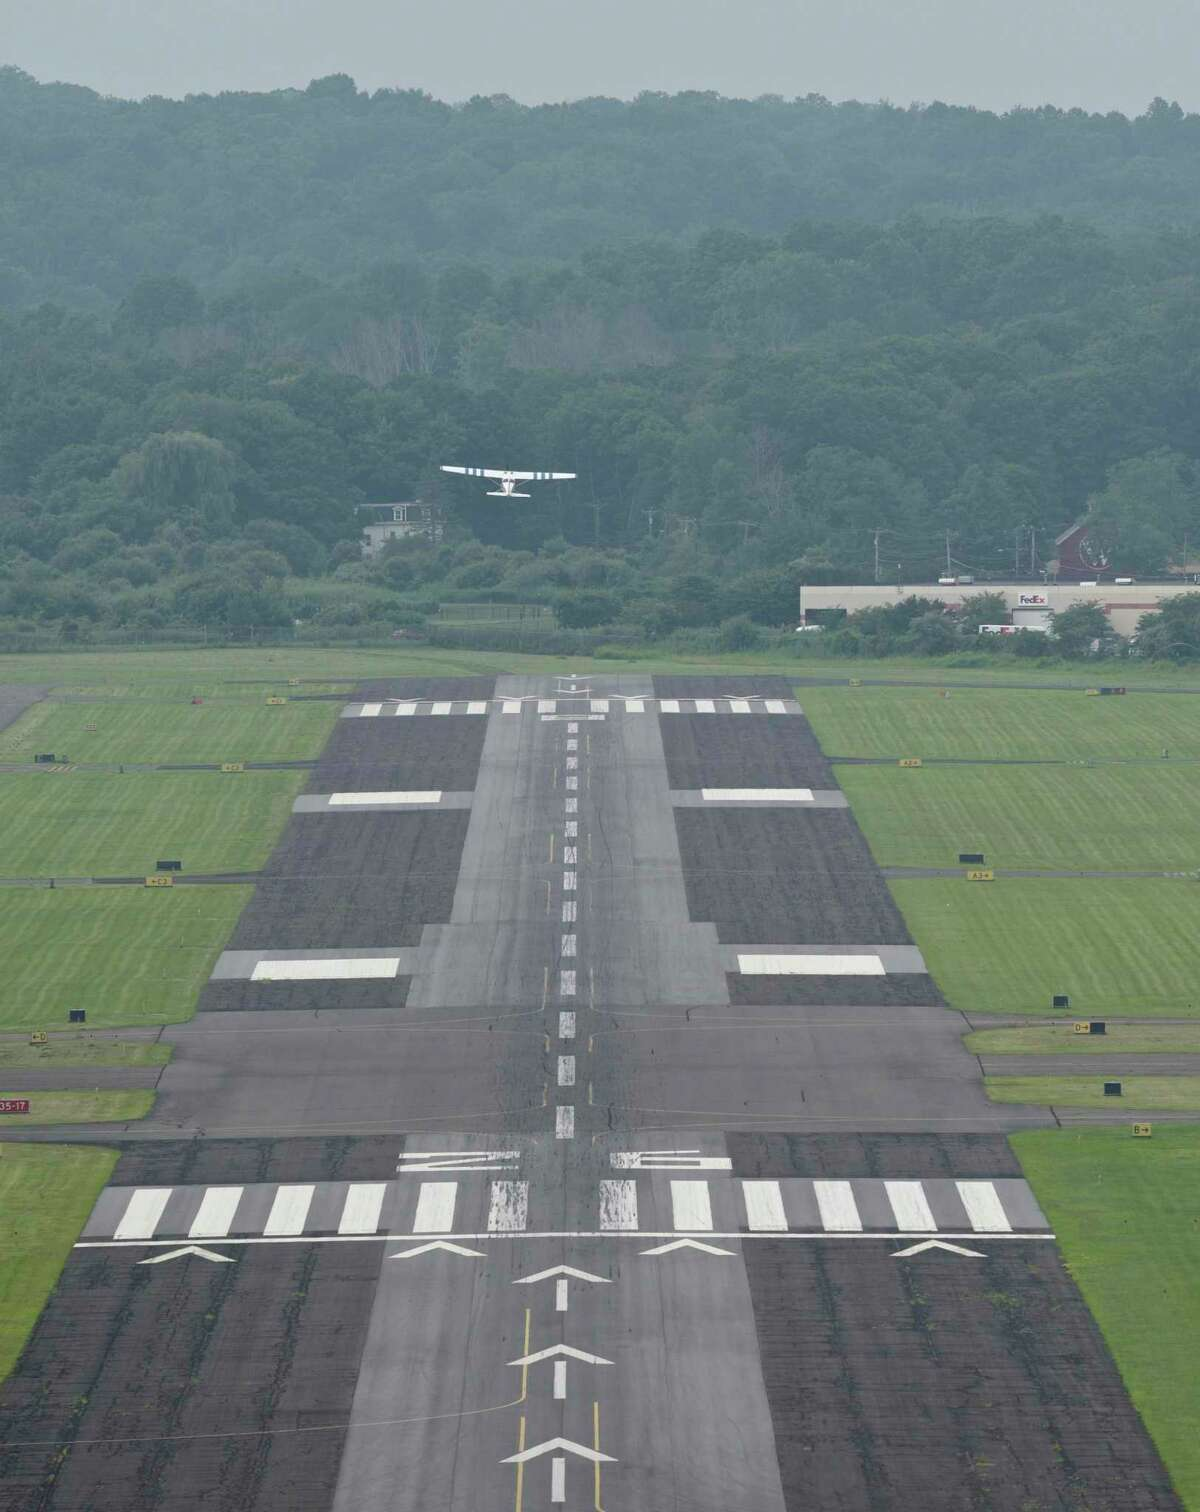 An airplane takes off from Danbury Municipal Airport into hazy sky's on Wednesday, July 21, 2021, in Danbury, Conn.